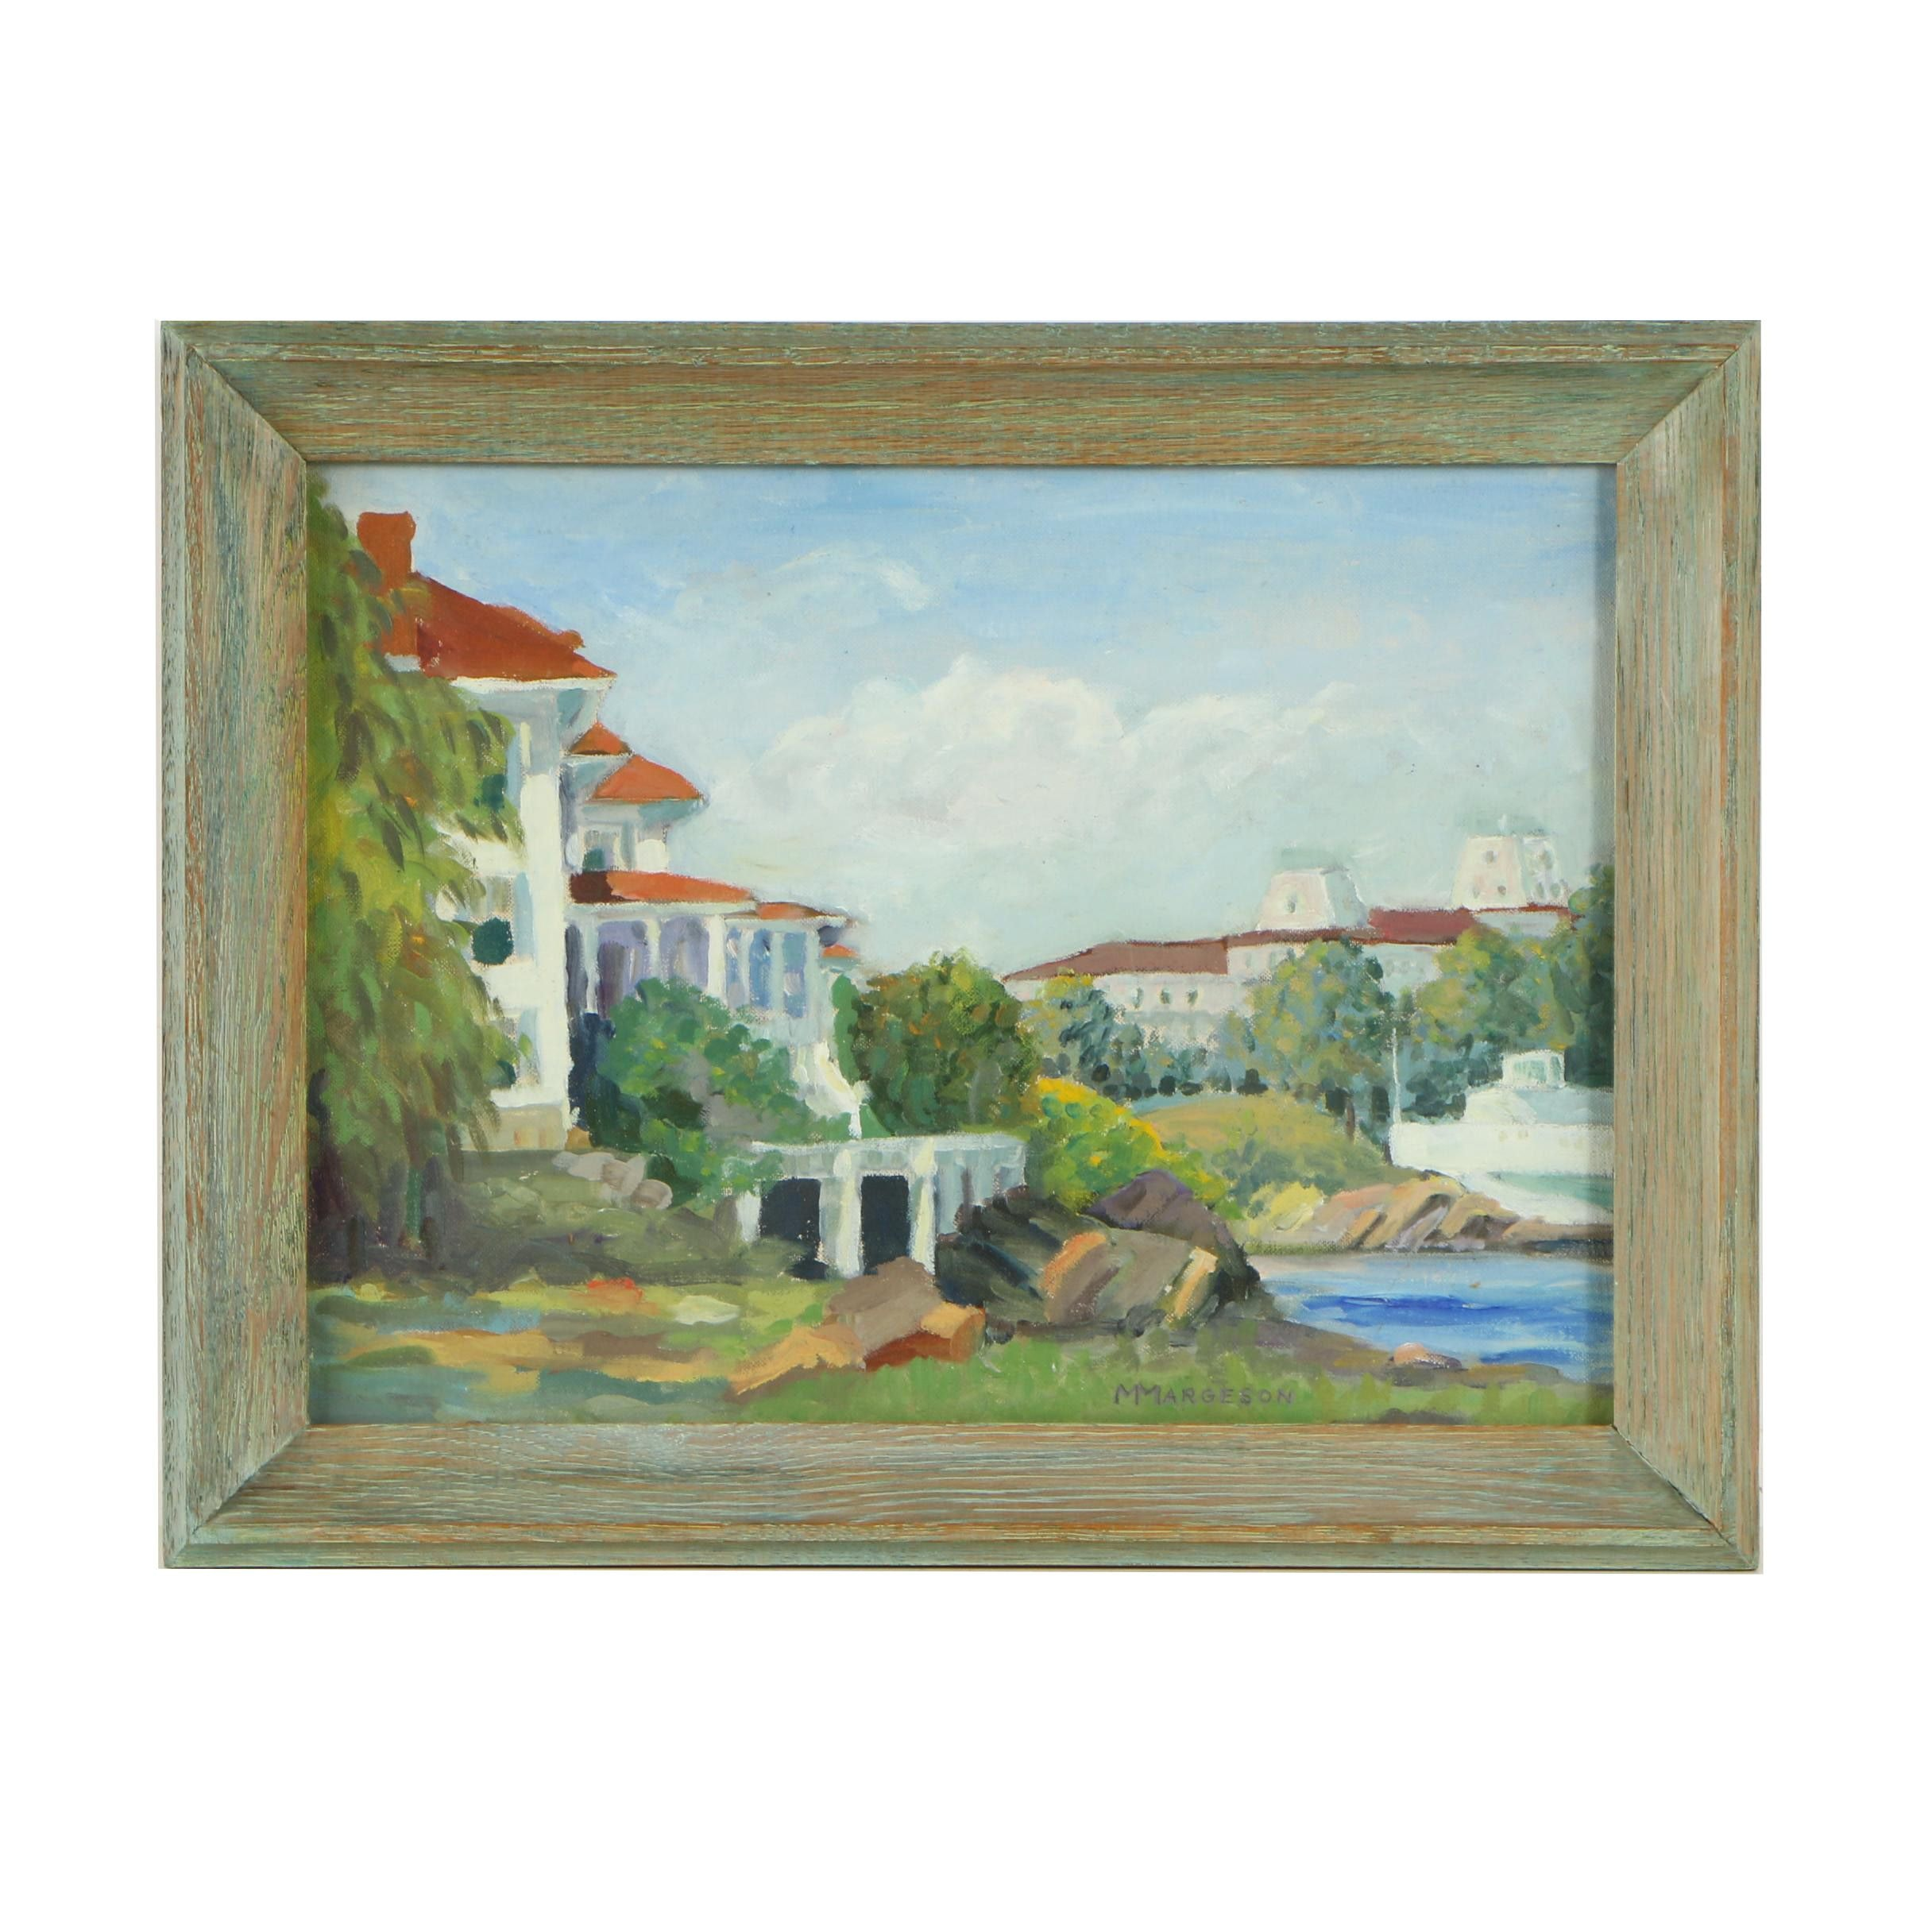 M. Margeson Oil Painting of Villas